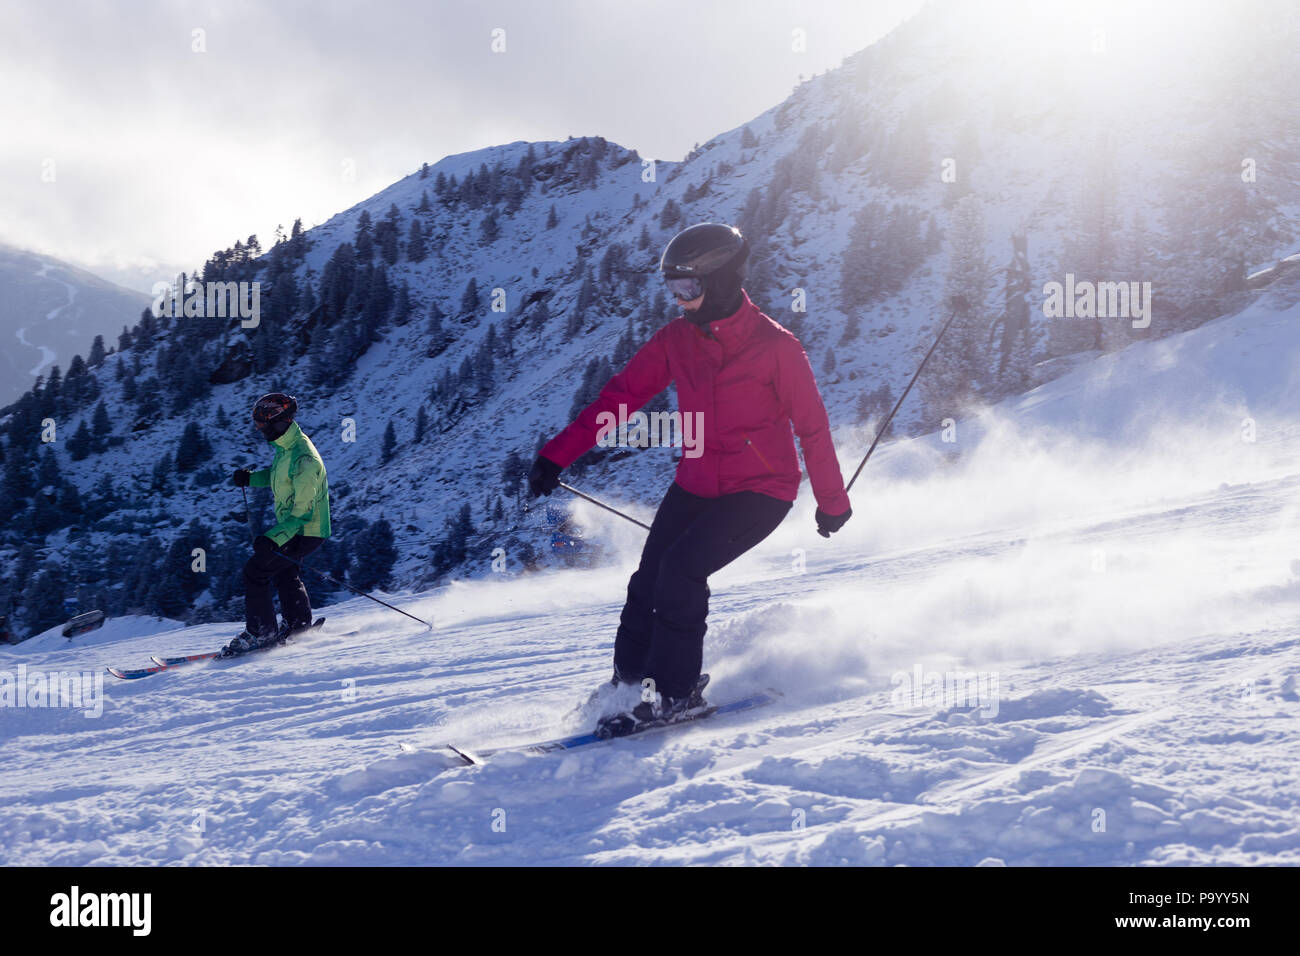 Skiing in the alps - Stock Image